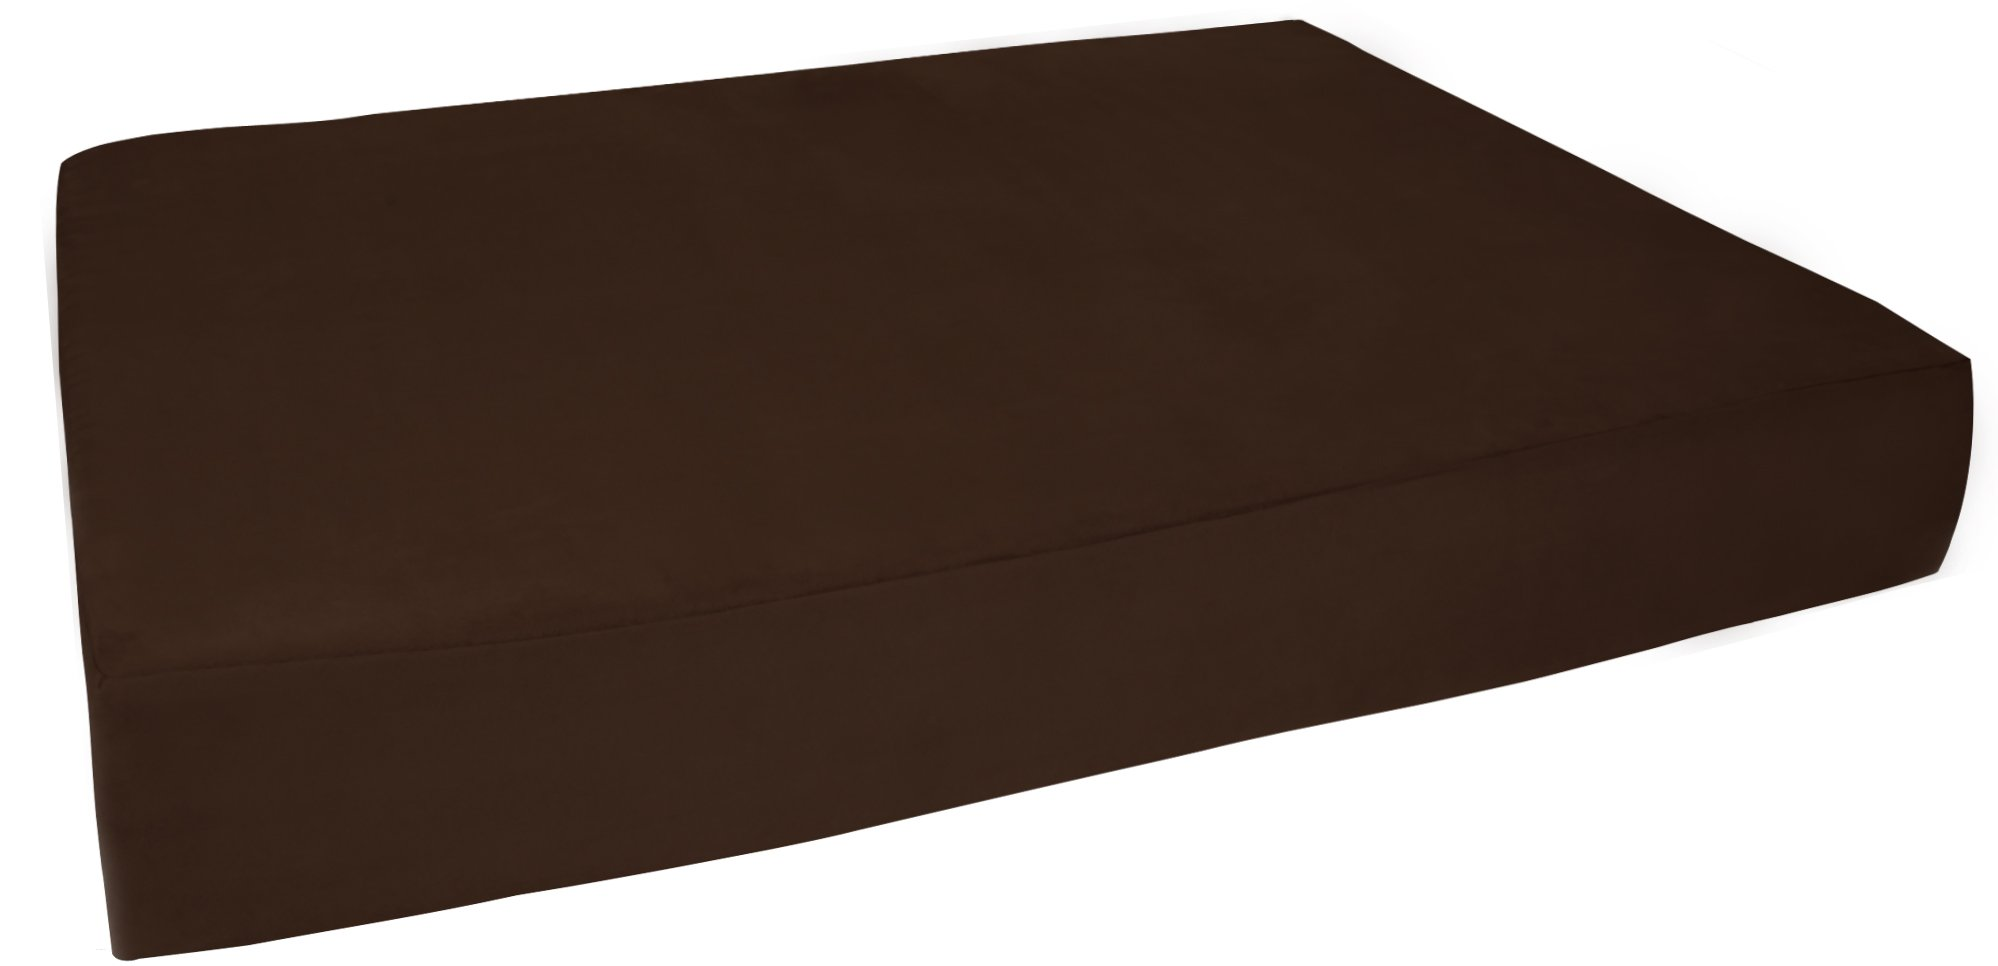 Big Barker 7'' Pillow Top Orthopedic Dog Bed - Large Size - 48 X 30 X 7 - Chocolate - For Large and Extra Large Breed Dogs (Sleek Edition) by Big Barker (Image #10)